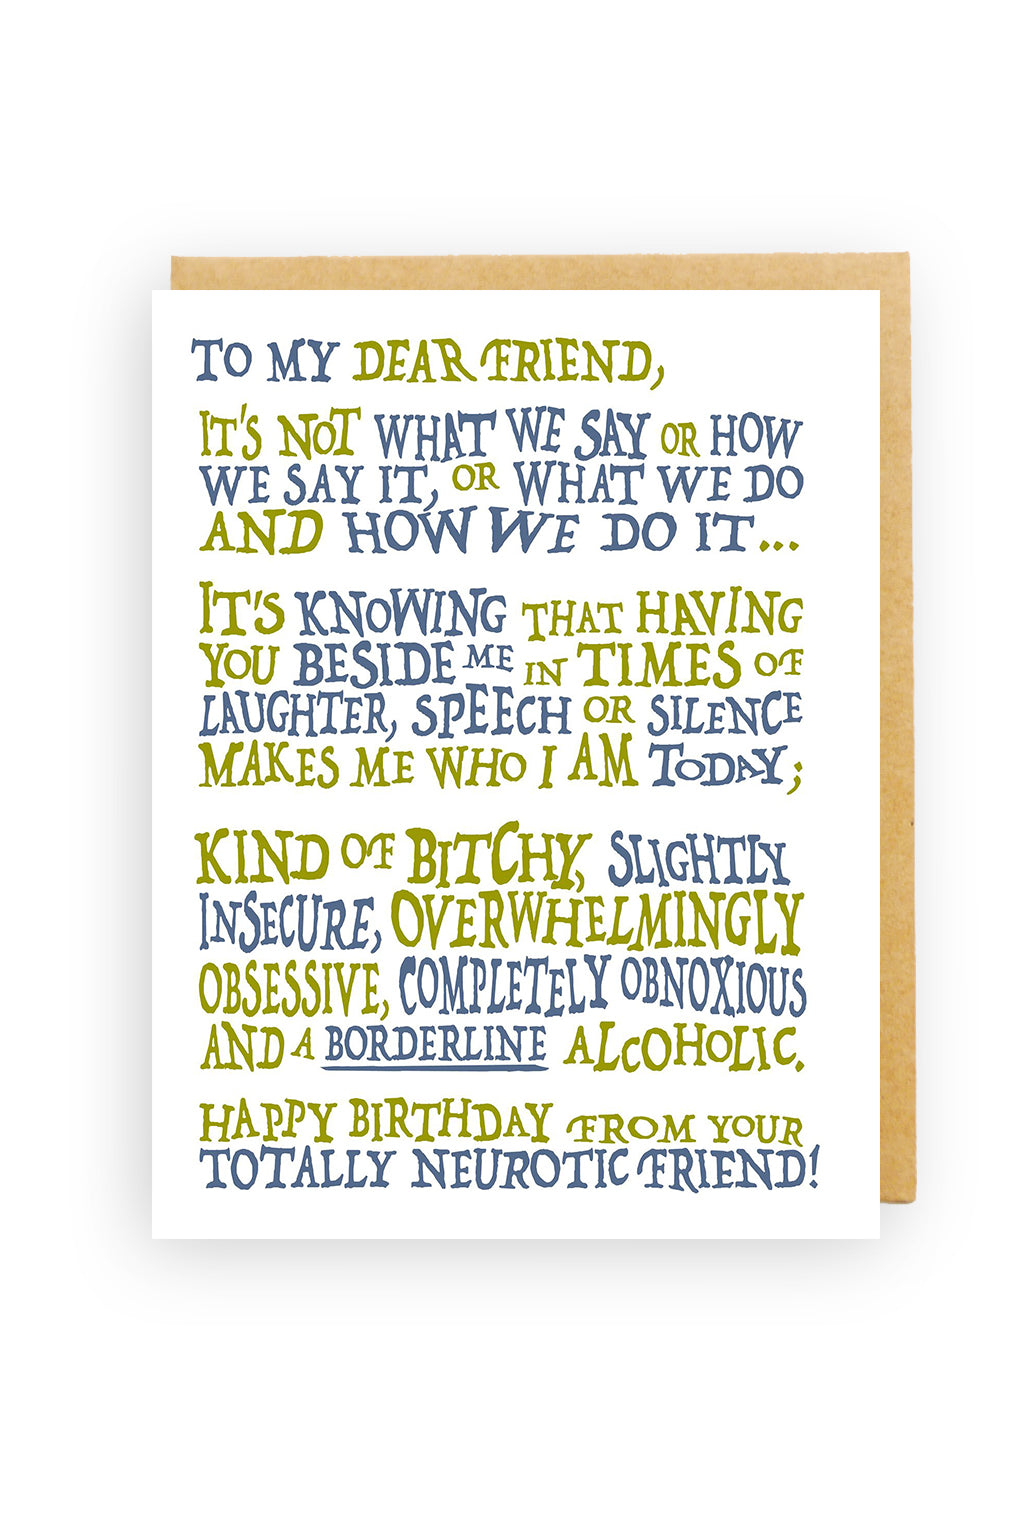 Squirrel Design Studio-To My Dear Friend - Birthday Card-Mott and Mulberry